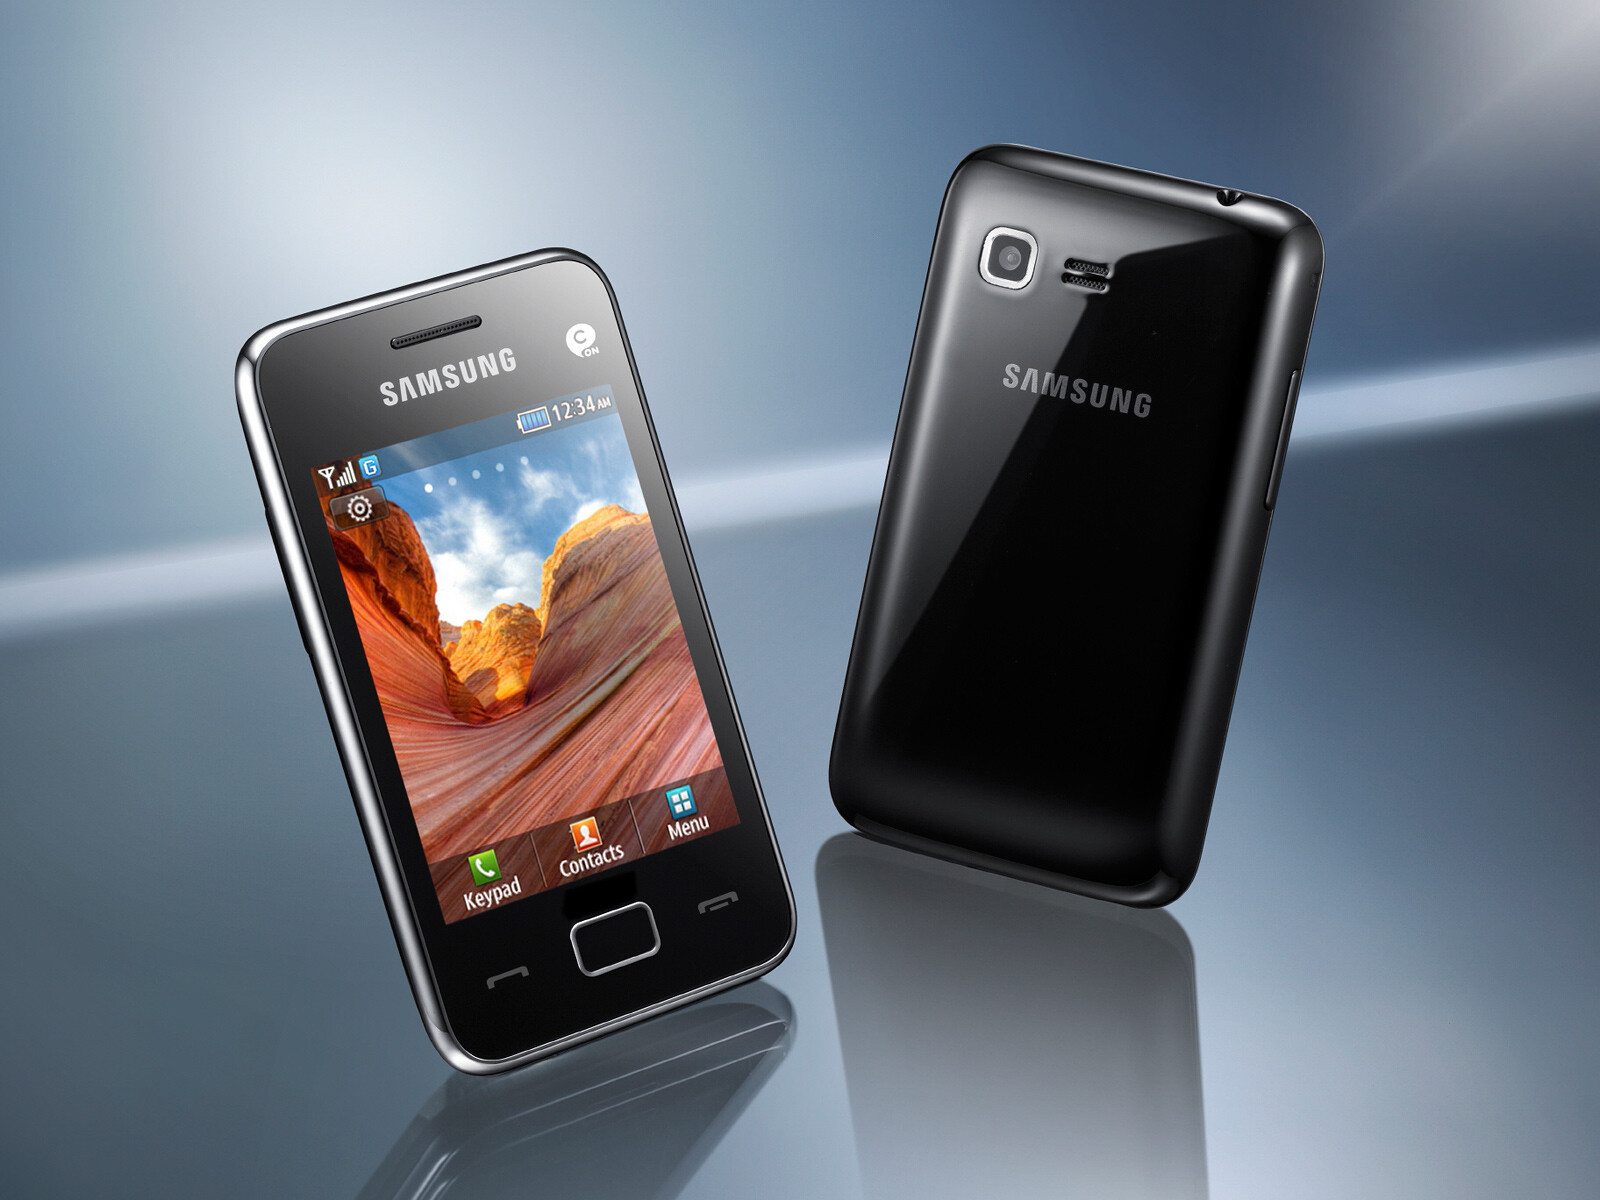 Applications for samsung s5222 download.